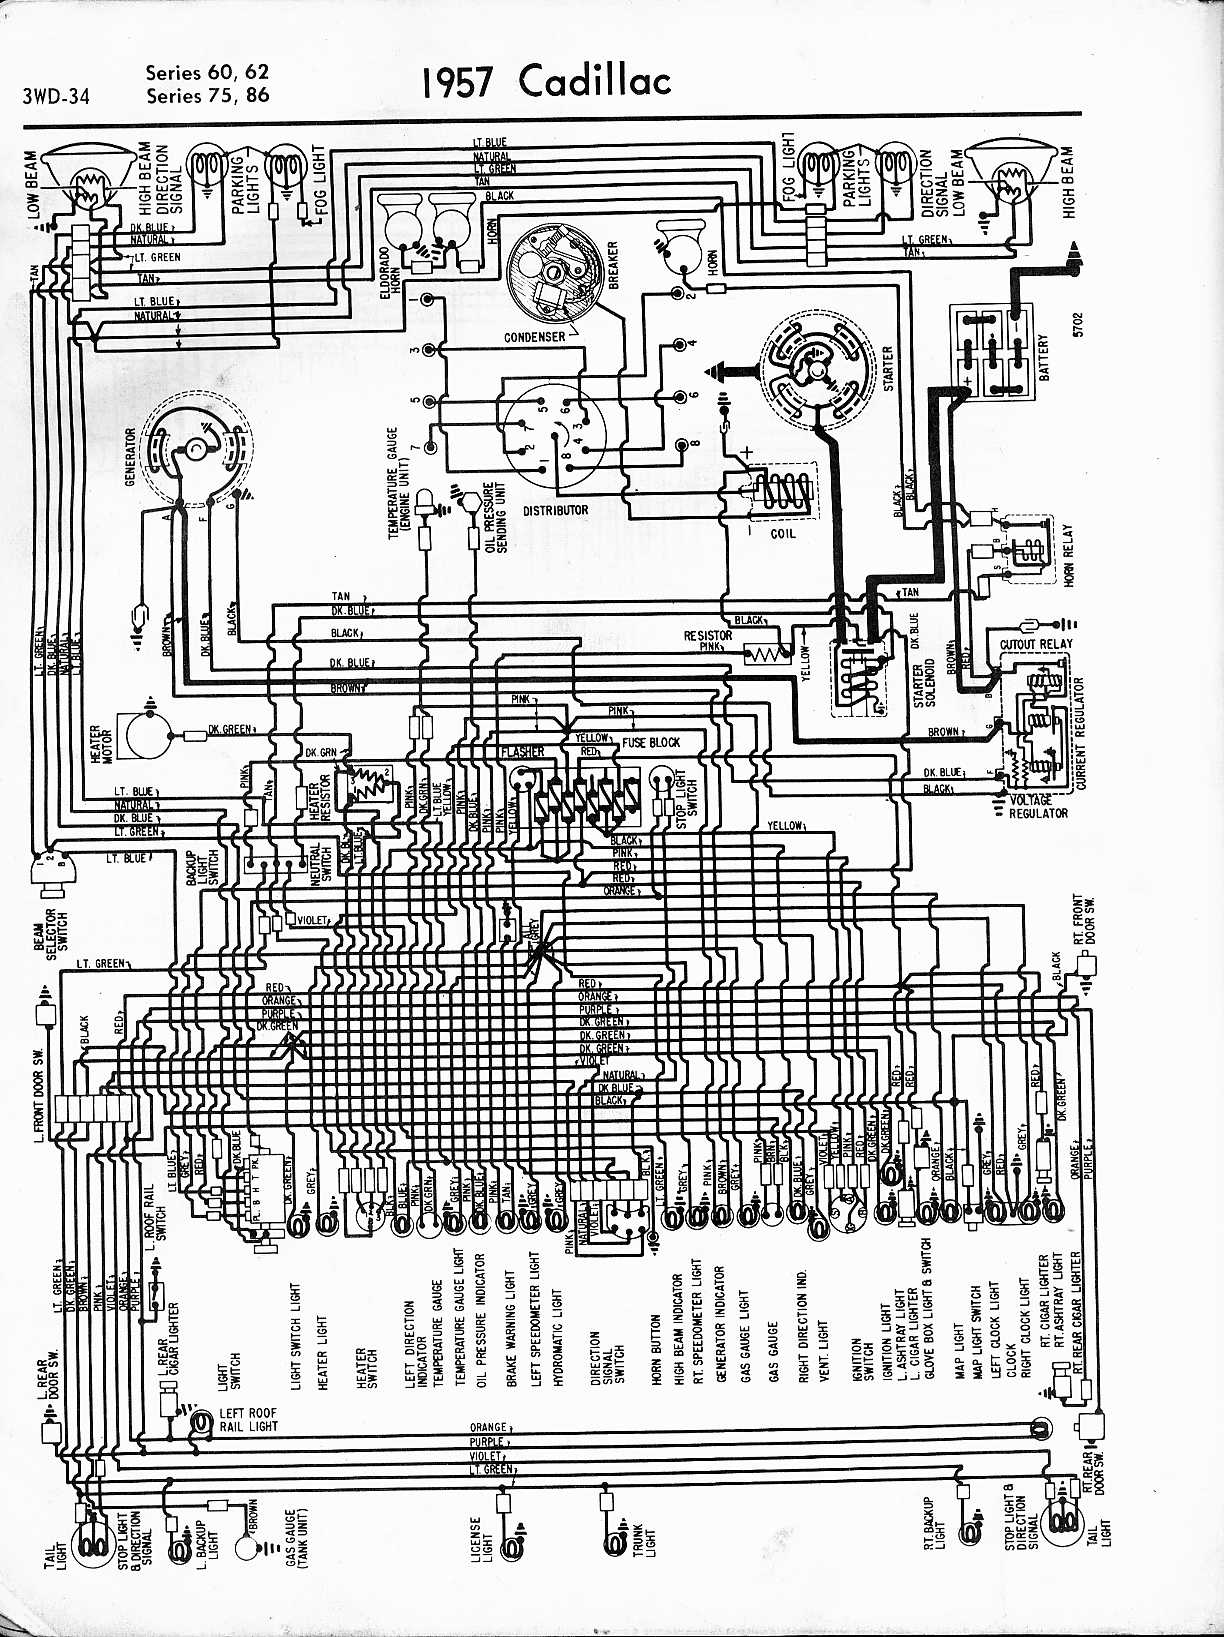 65 Cadillac Wiring Diagram Reinvent Your 1969 Barracuda Diagrams 1957 1965 Rh Oldcarmanualproject Com 1967 Alternator Deville